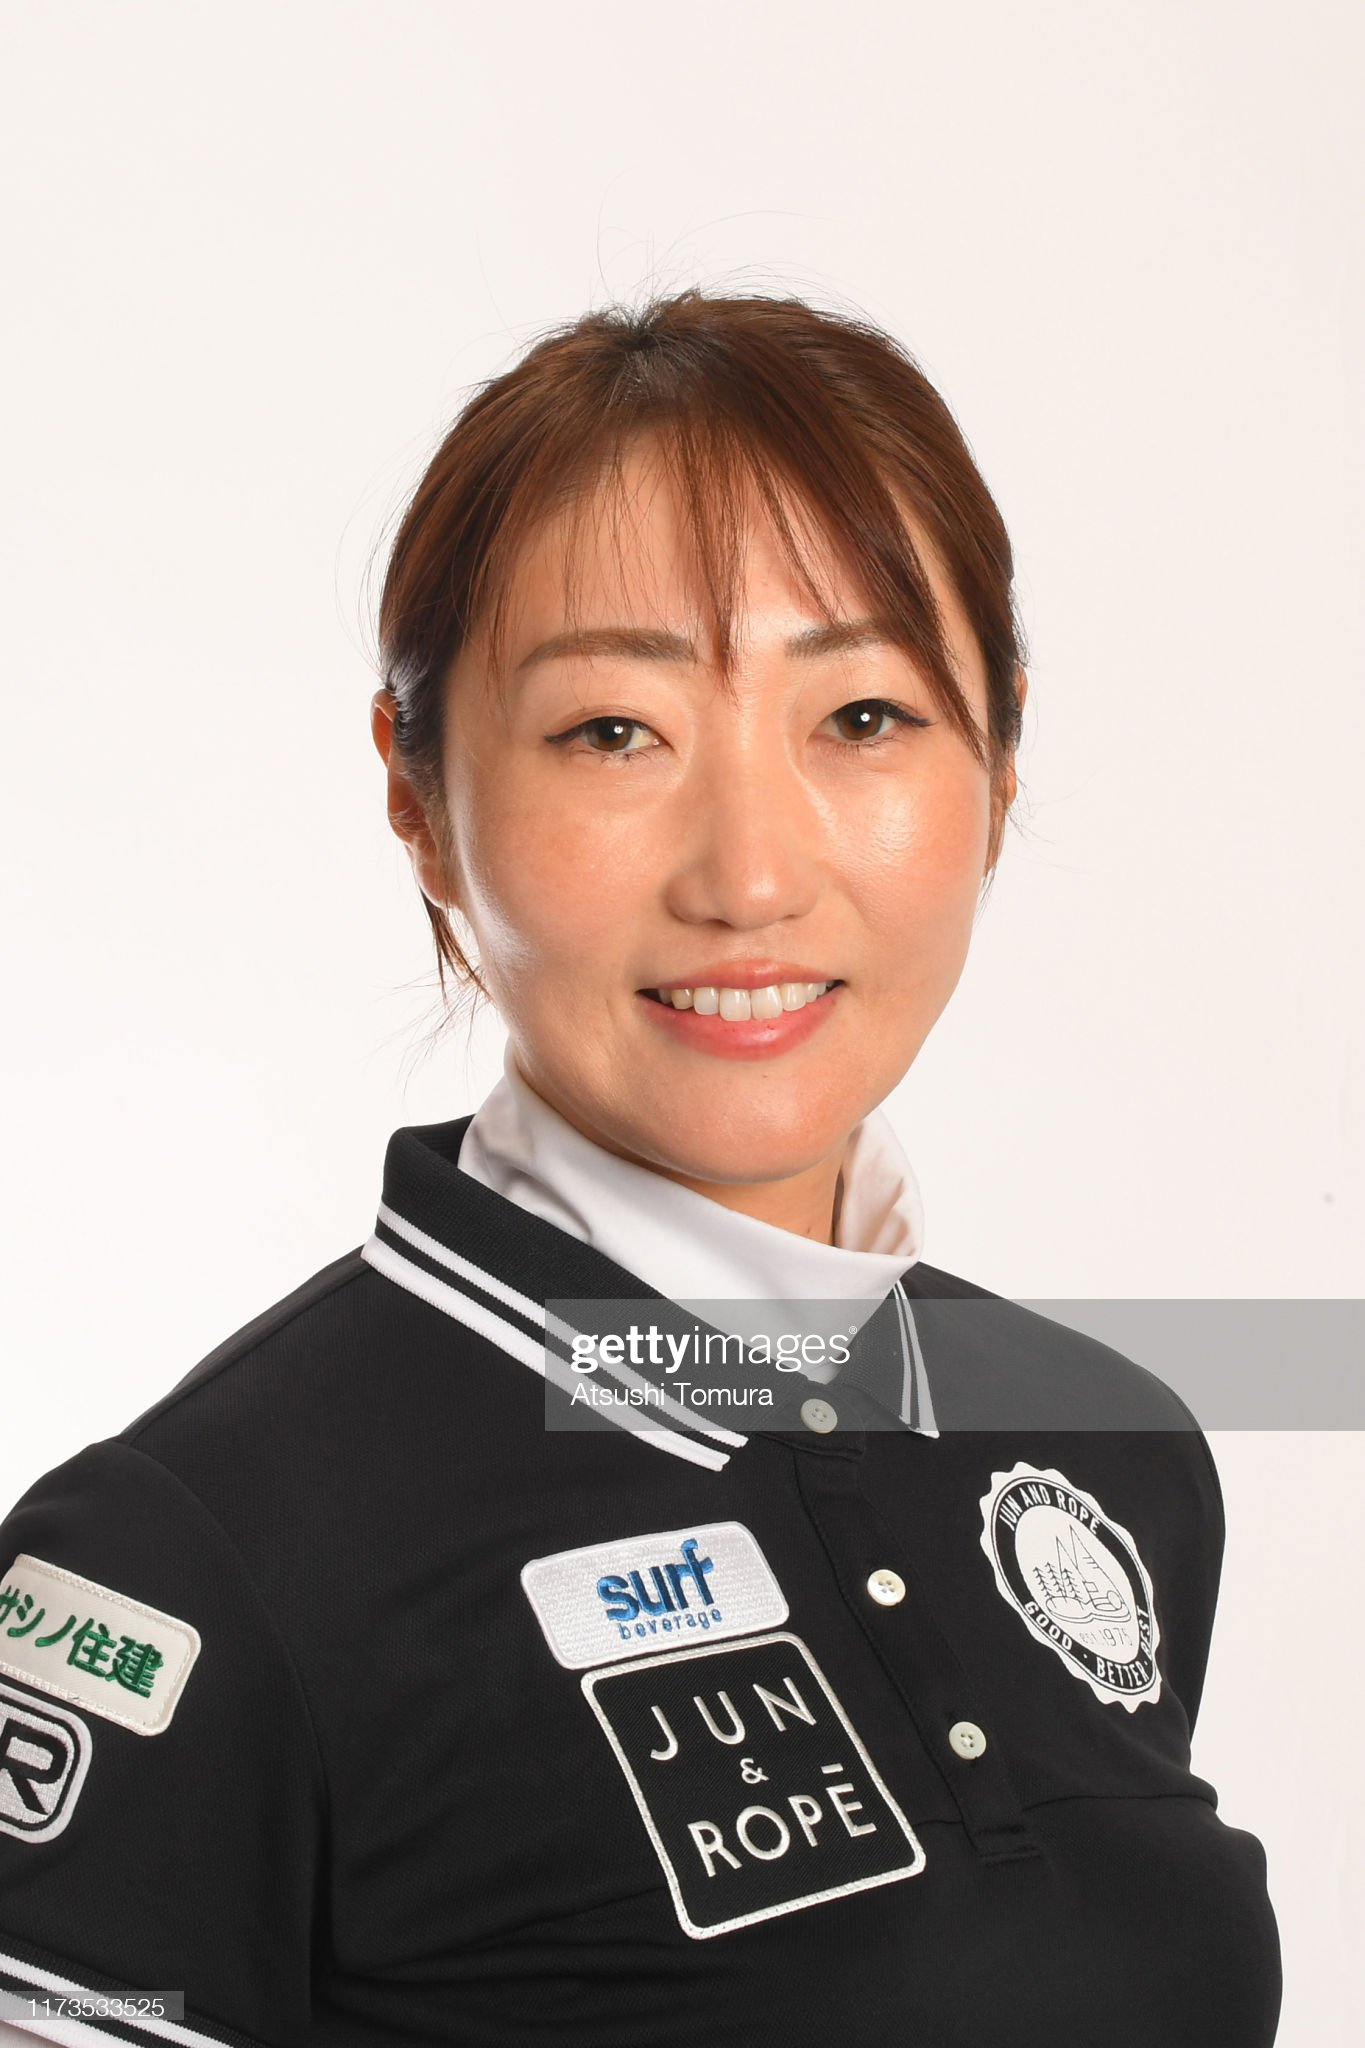 https://media.gettyimages.com/photos/akane-iijima-of-japan-poses-during-the-japanese-lpga-portrait-session-picture-id1173533525?s=2048x2048